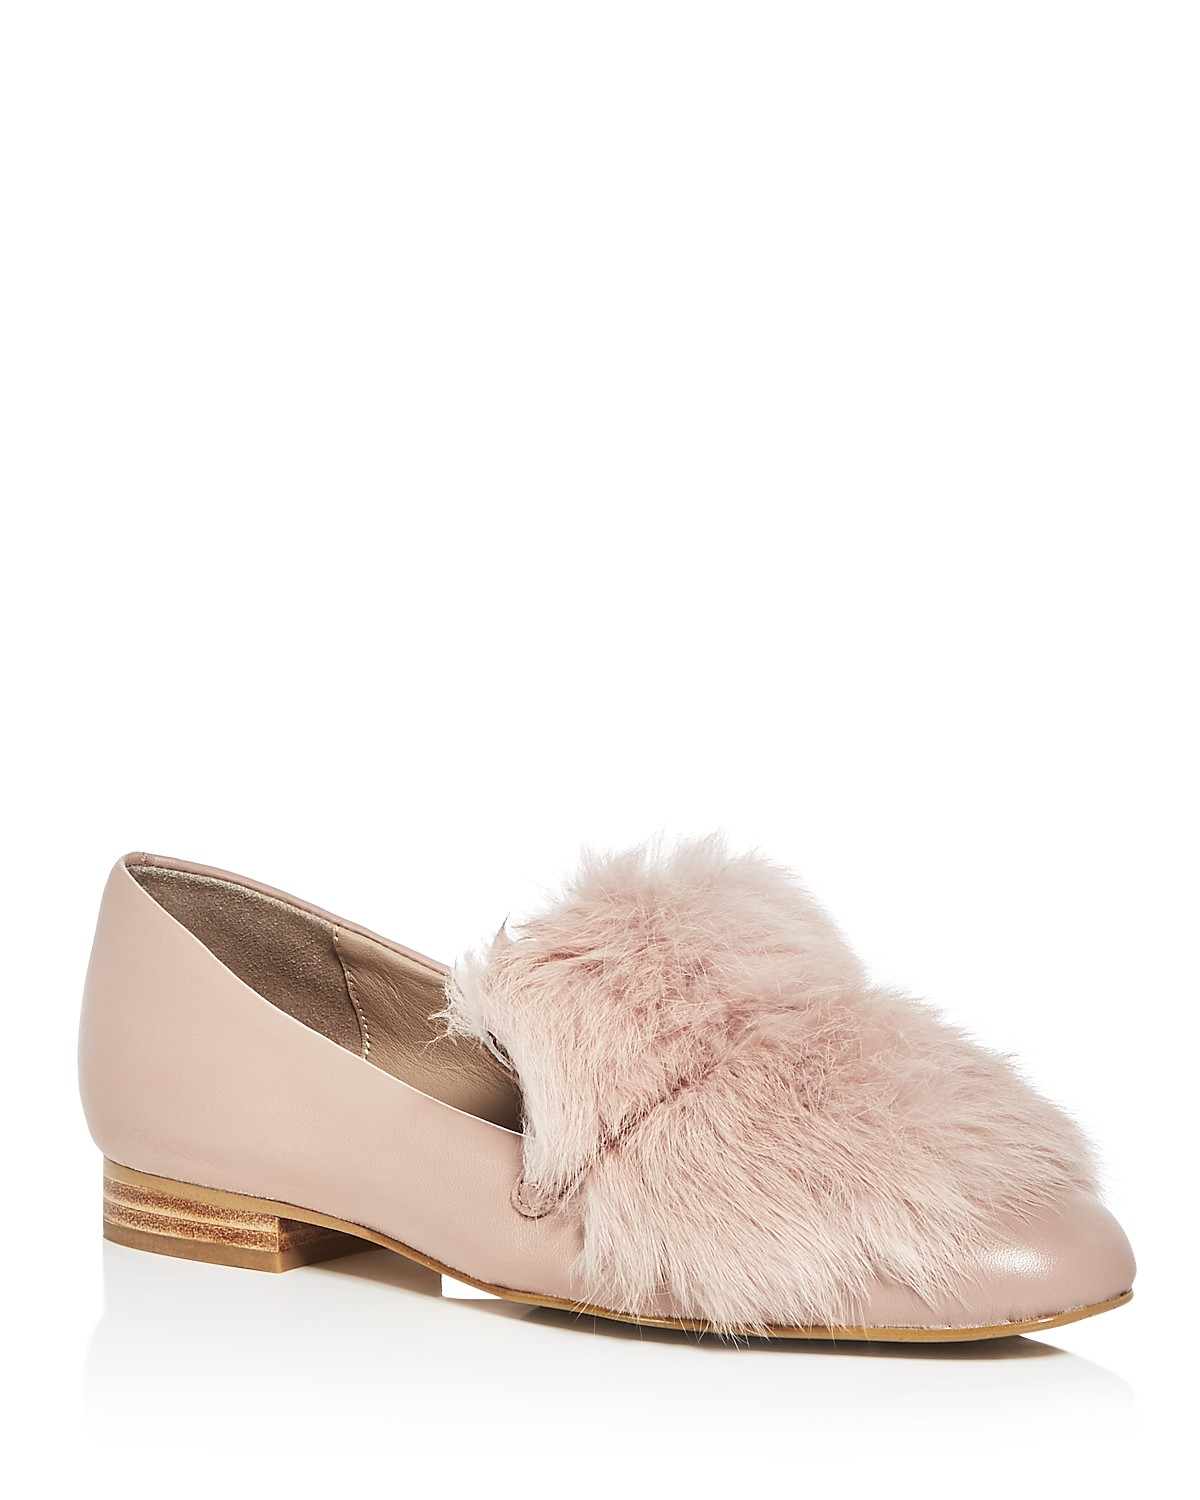 3 loafers - Pink Lillian Leather   Fur Loafers